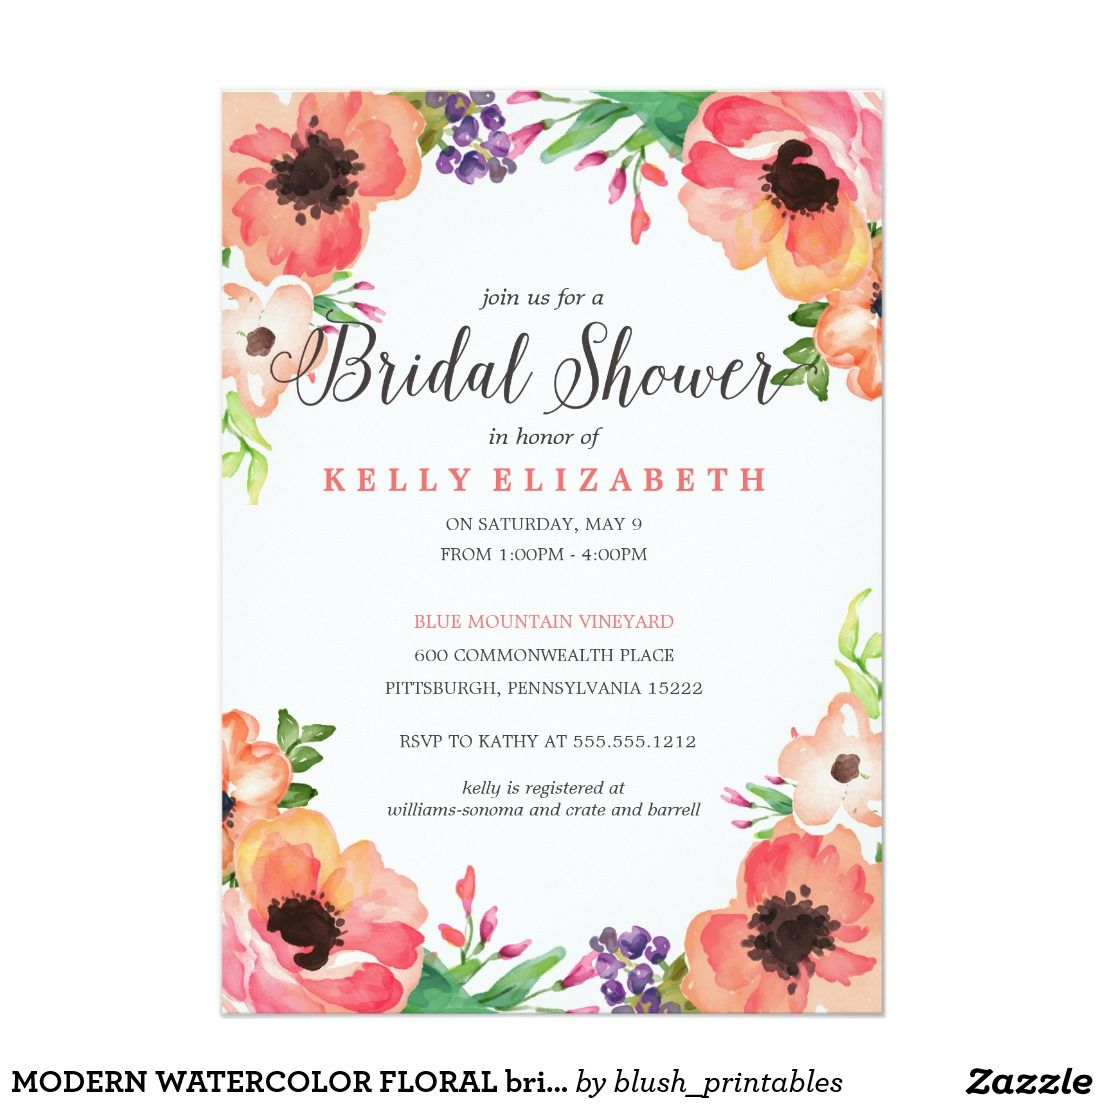 Modern Watercolor Floral Bridal Shower Invitation Shower